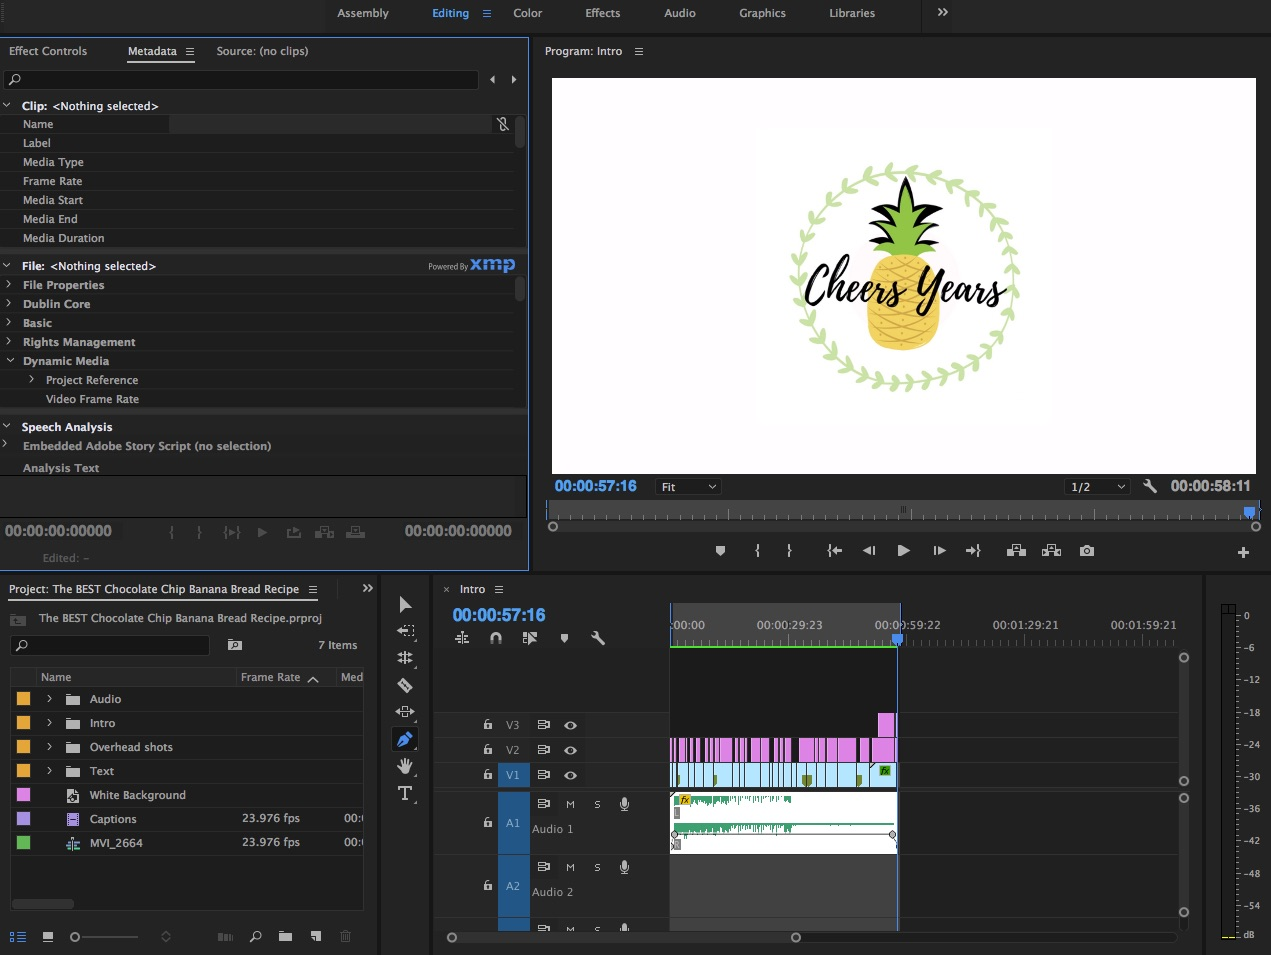 5 lessons I learned from beginning recipe videos on Adobe Premiere Pro | Cheers Years